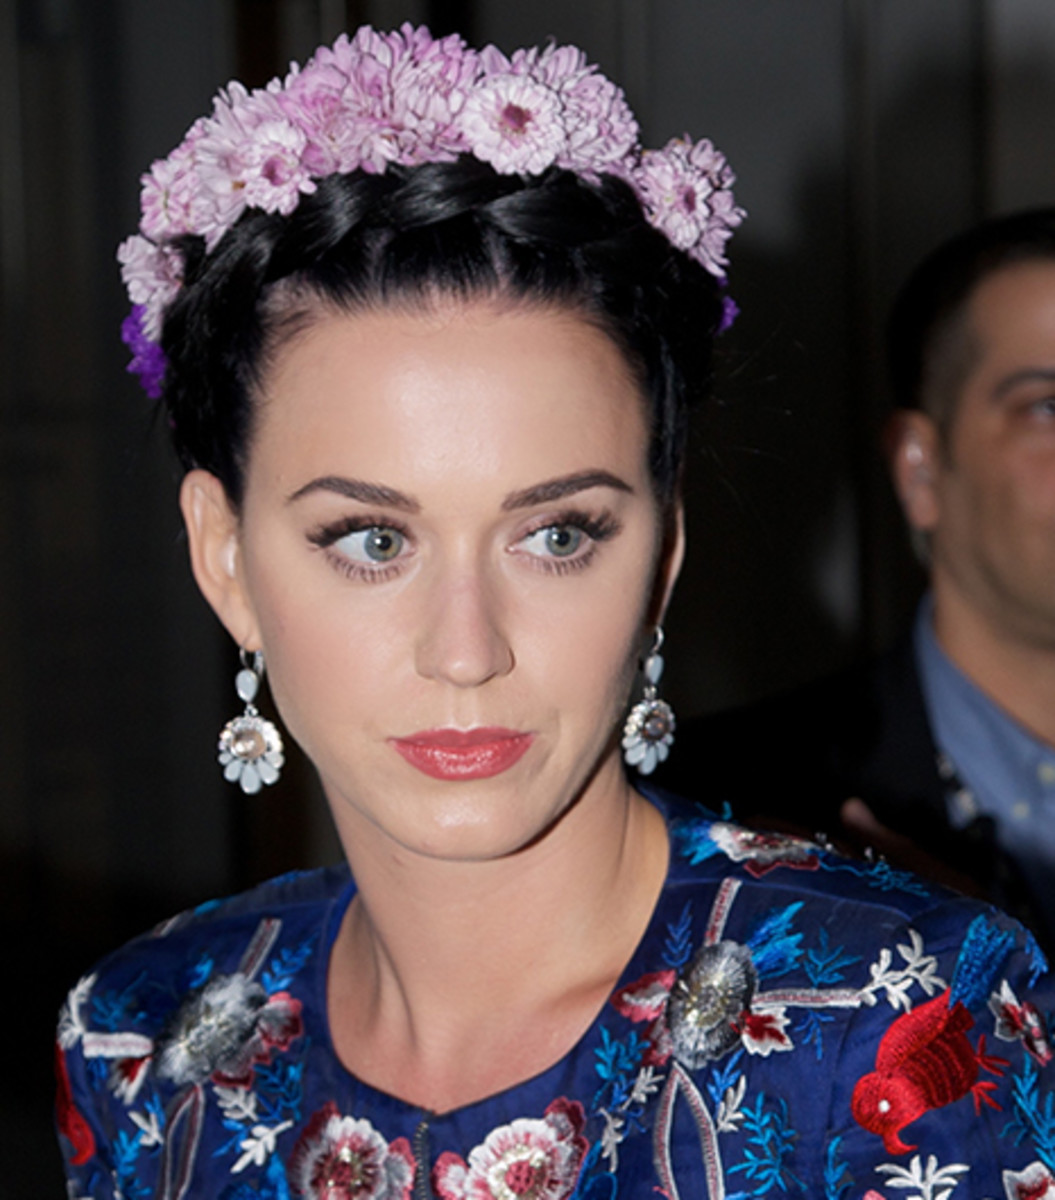 Katy Perry in a floral crown